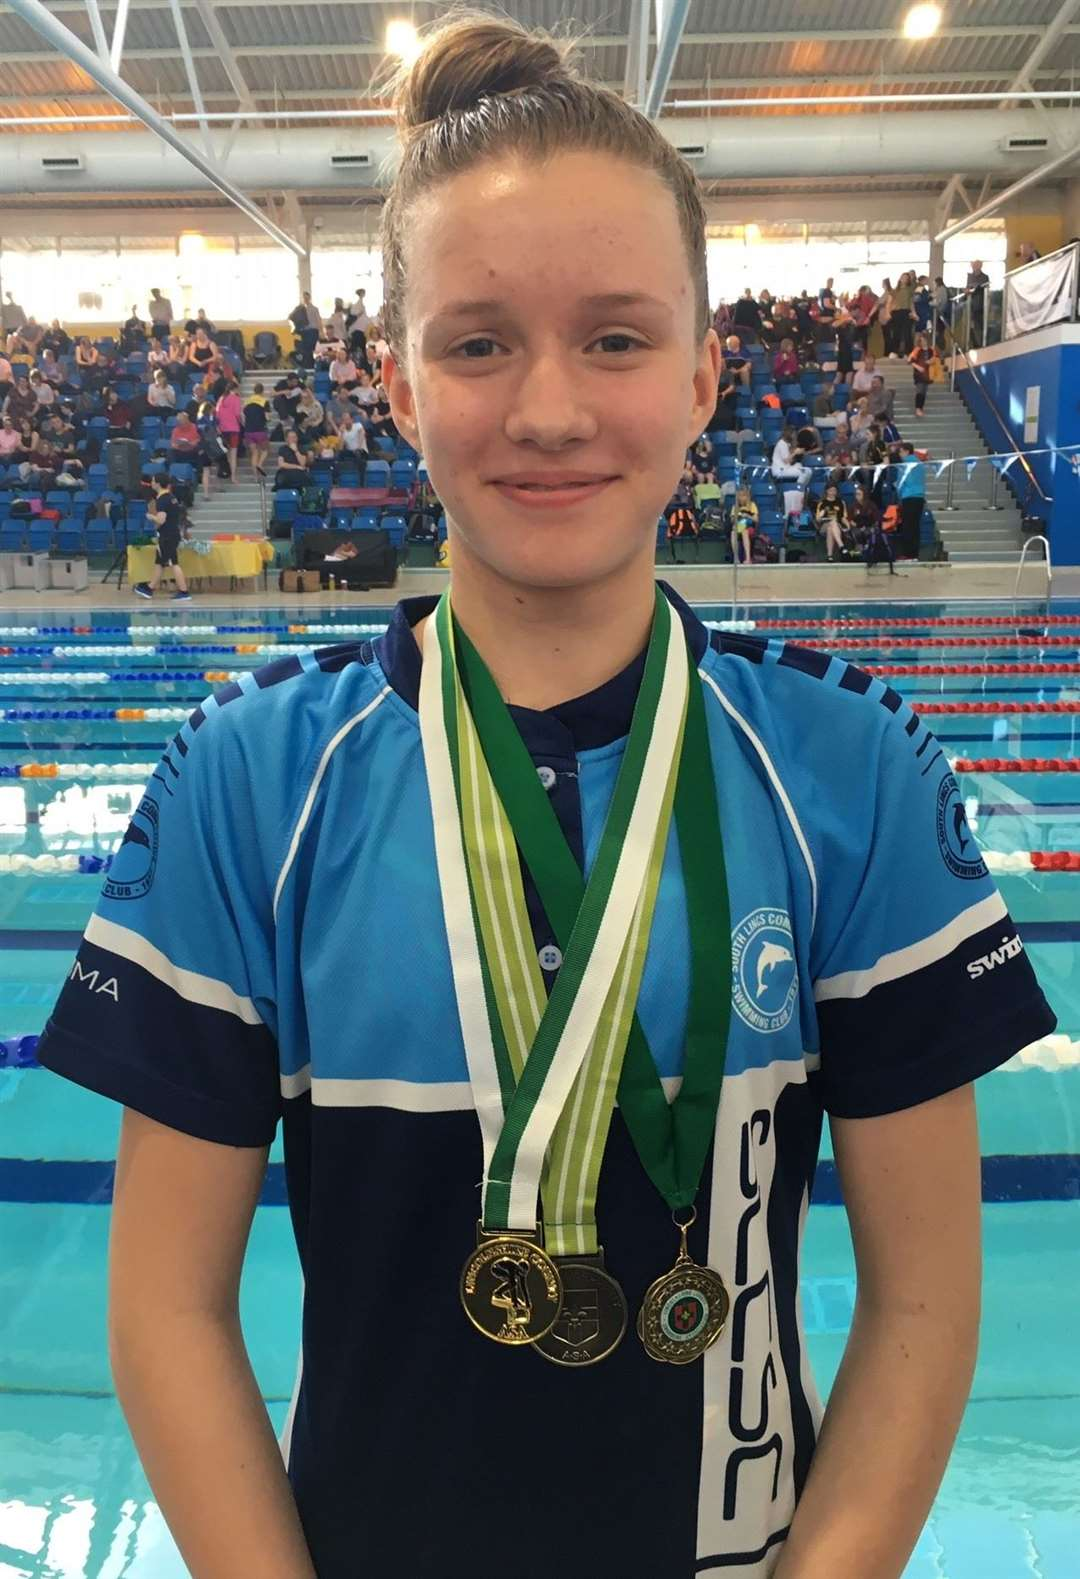 South Lincs Competitive Swimming Club double gold medallist Emma Croker.Photo supplied.